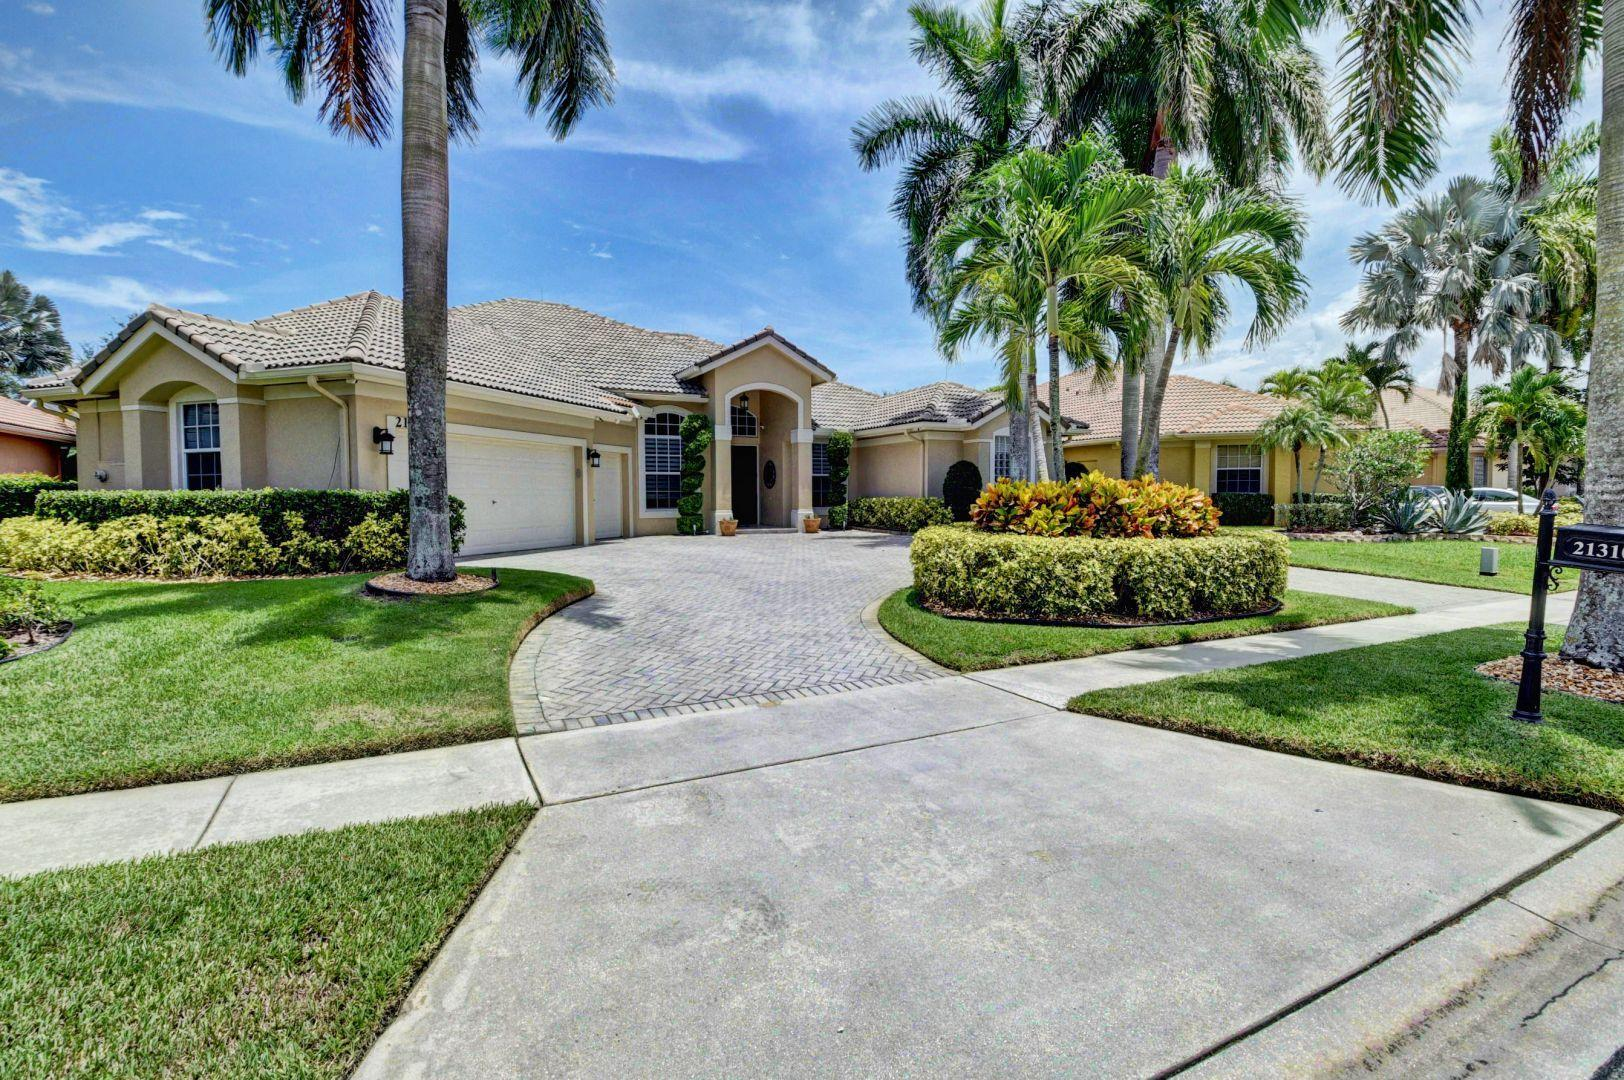 Photo of 21310 Falls Ridge Way, Boca Raton, FL 33428